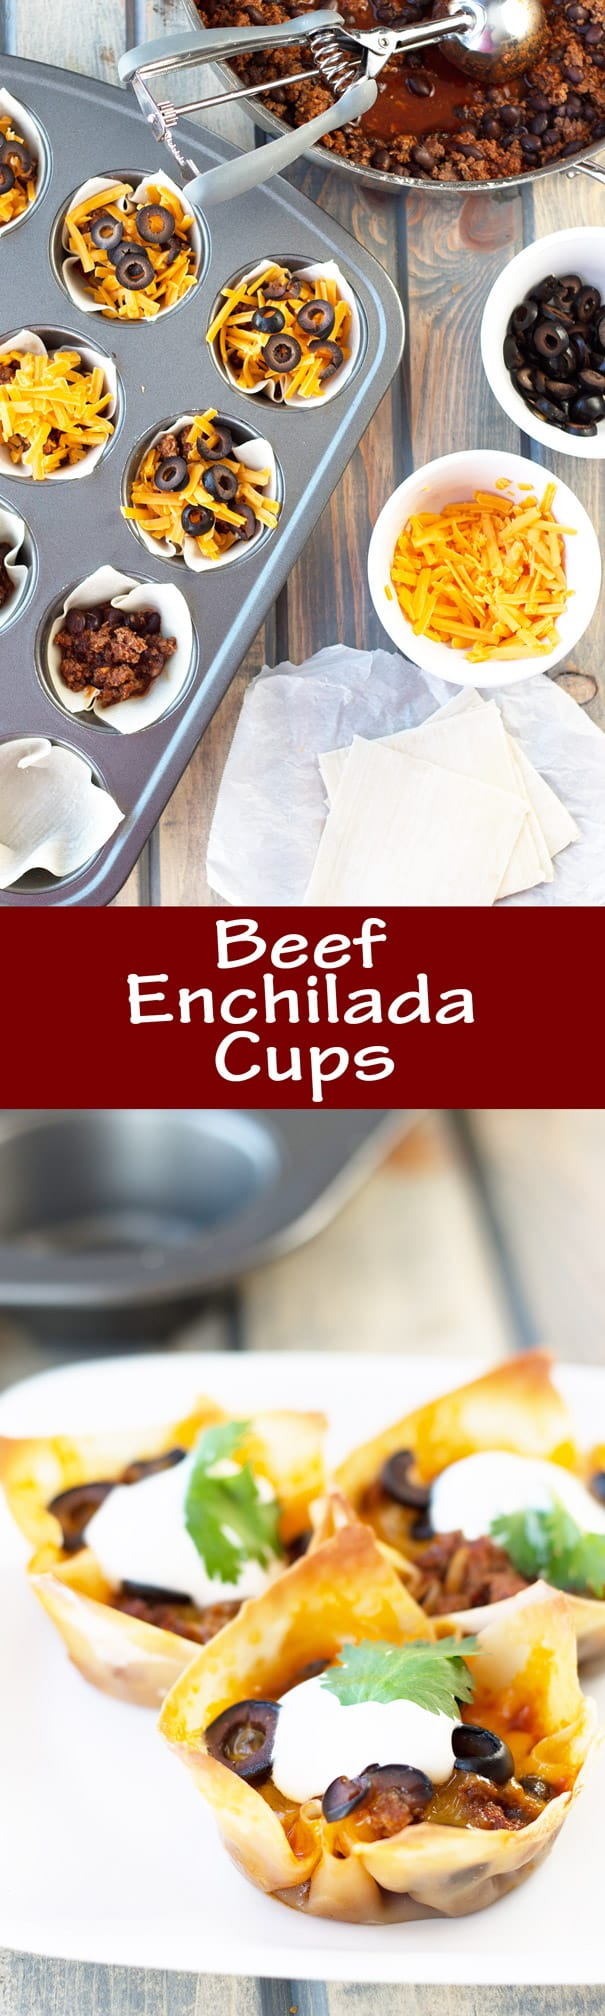 Beef Enchilada Cups- an easy and oh so tasty game day appetizer. Filled with seasoned beef, black beans, cheddar, black olives and topped with creamy sour cream. | Countryside Cravings